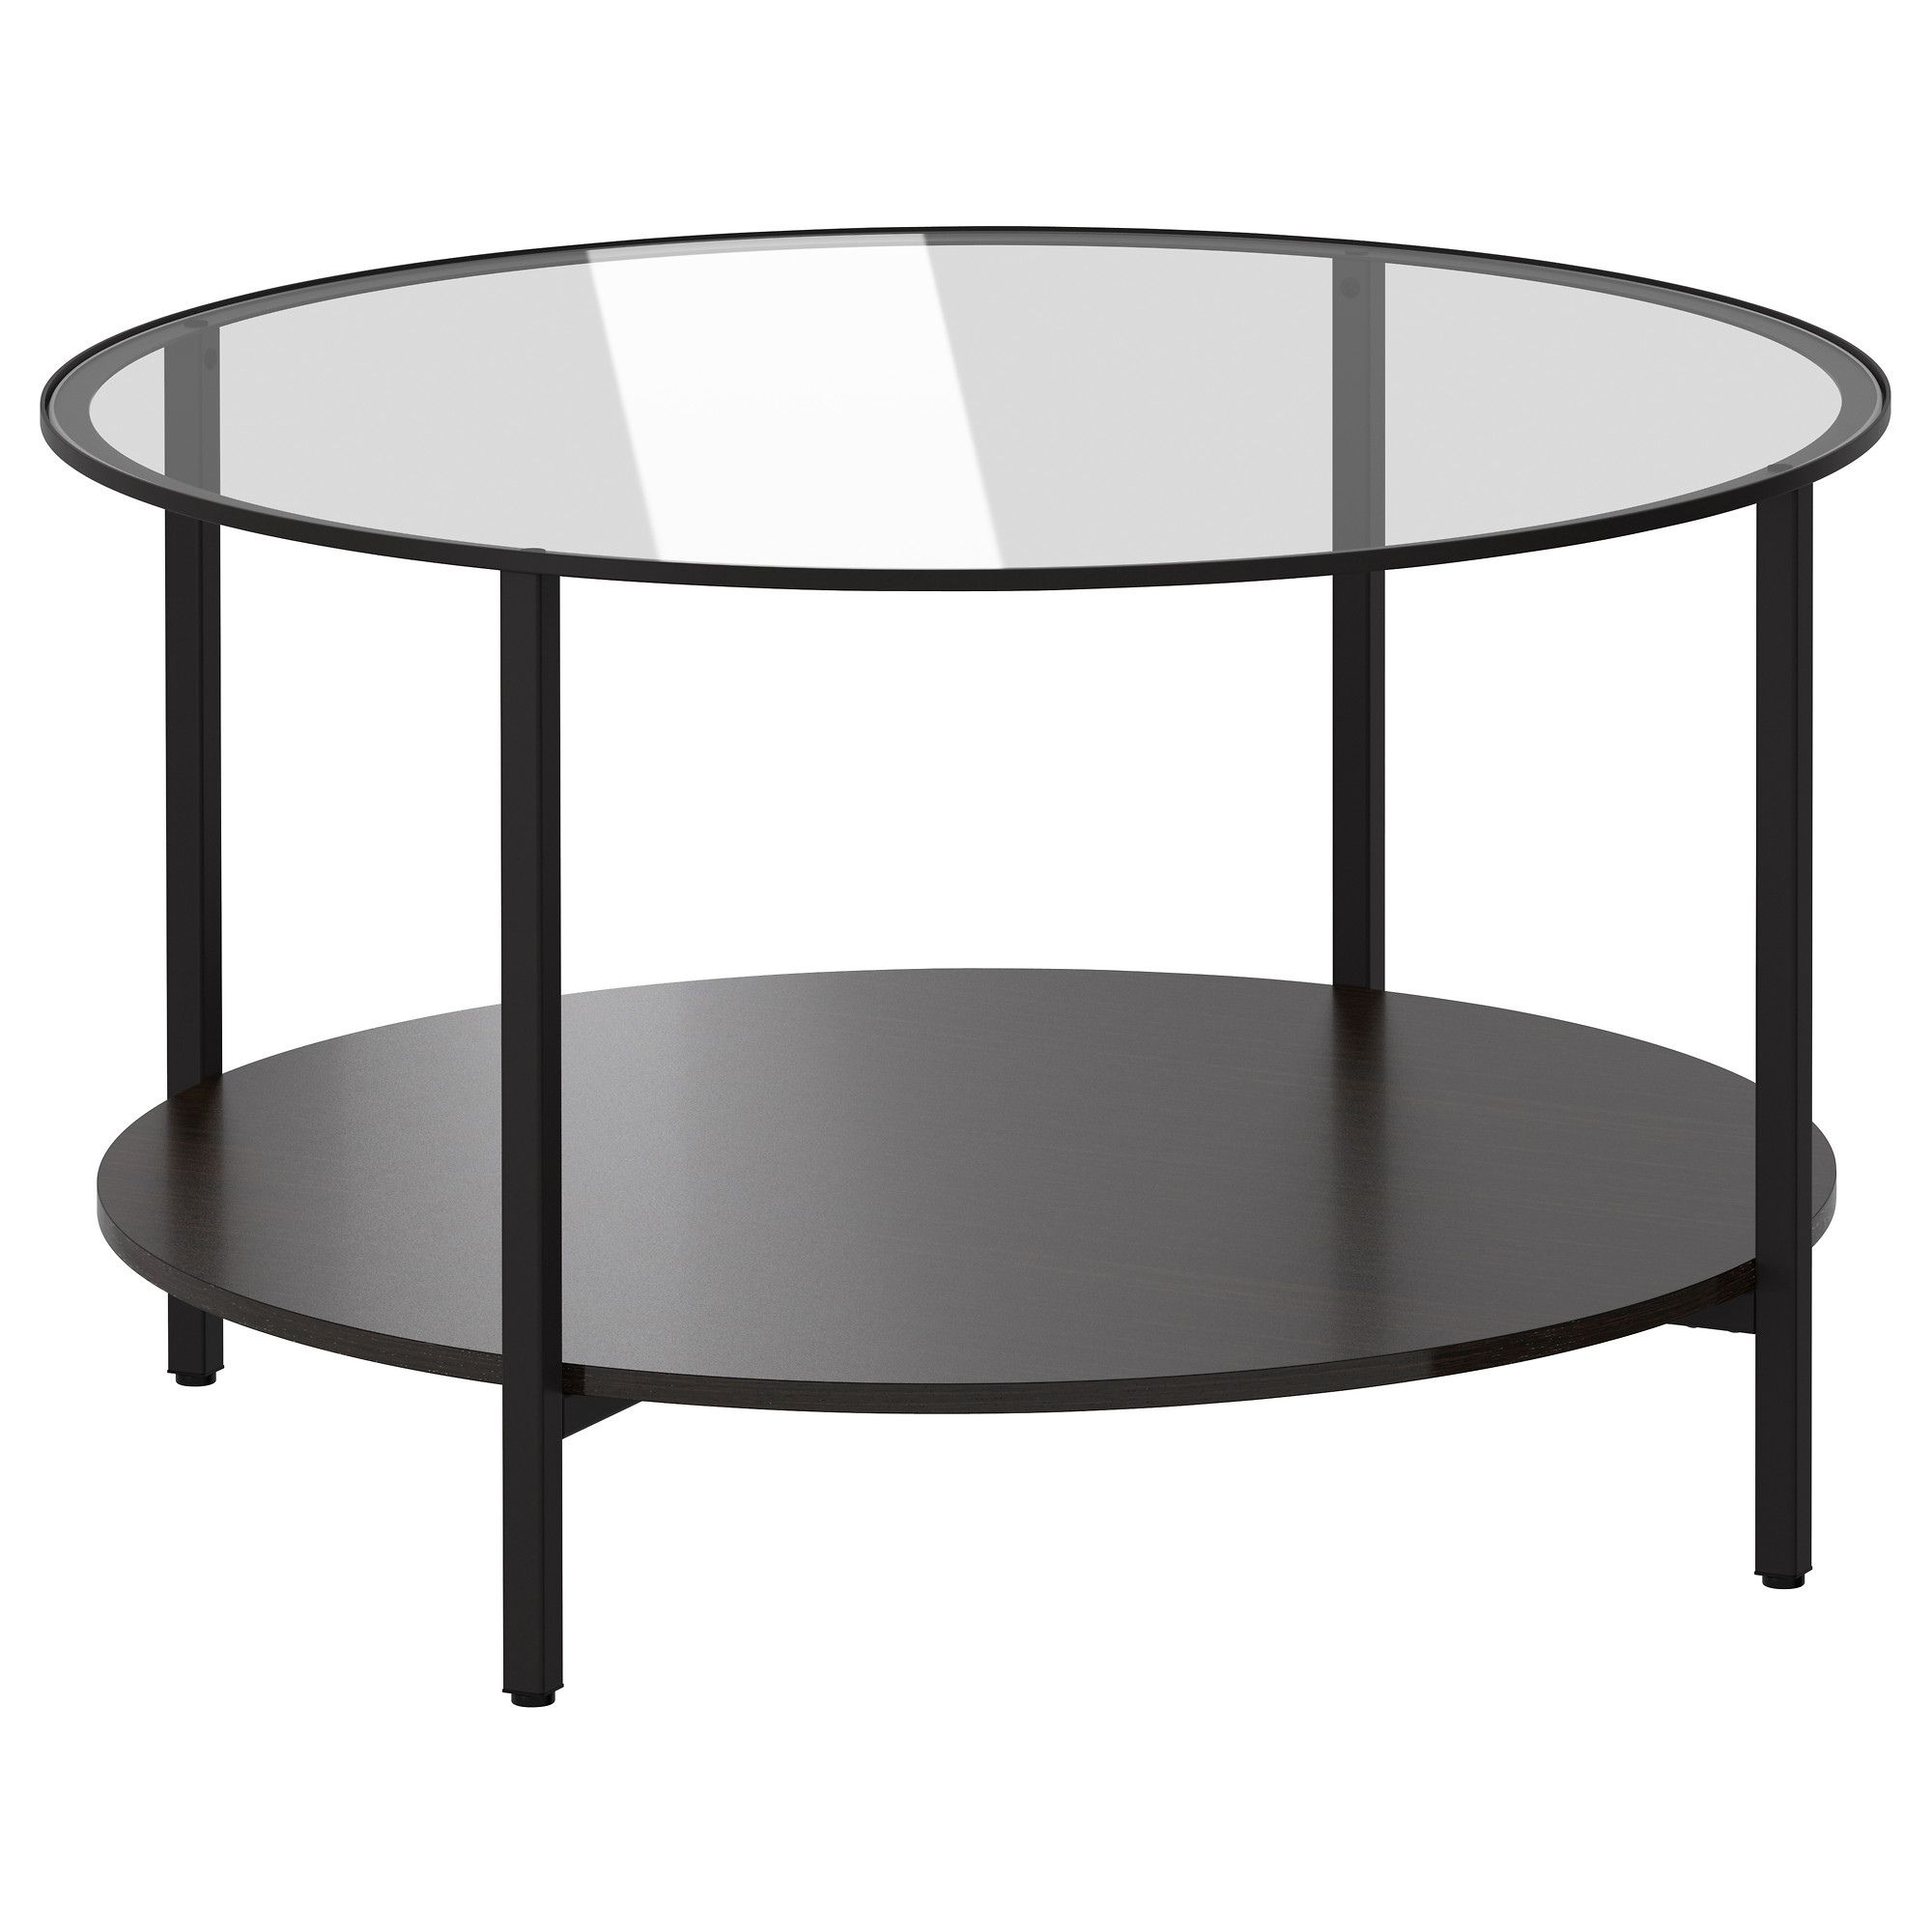 Round Coffee Table Ikea - Sectional Living Room Set Check more at ...